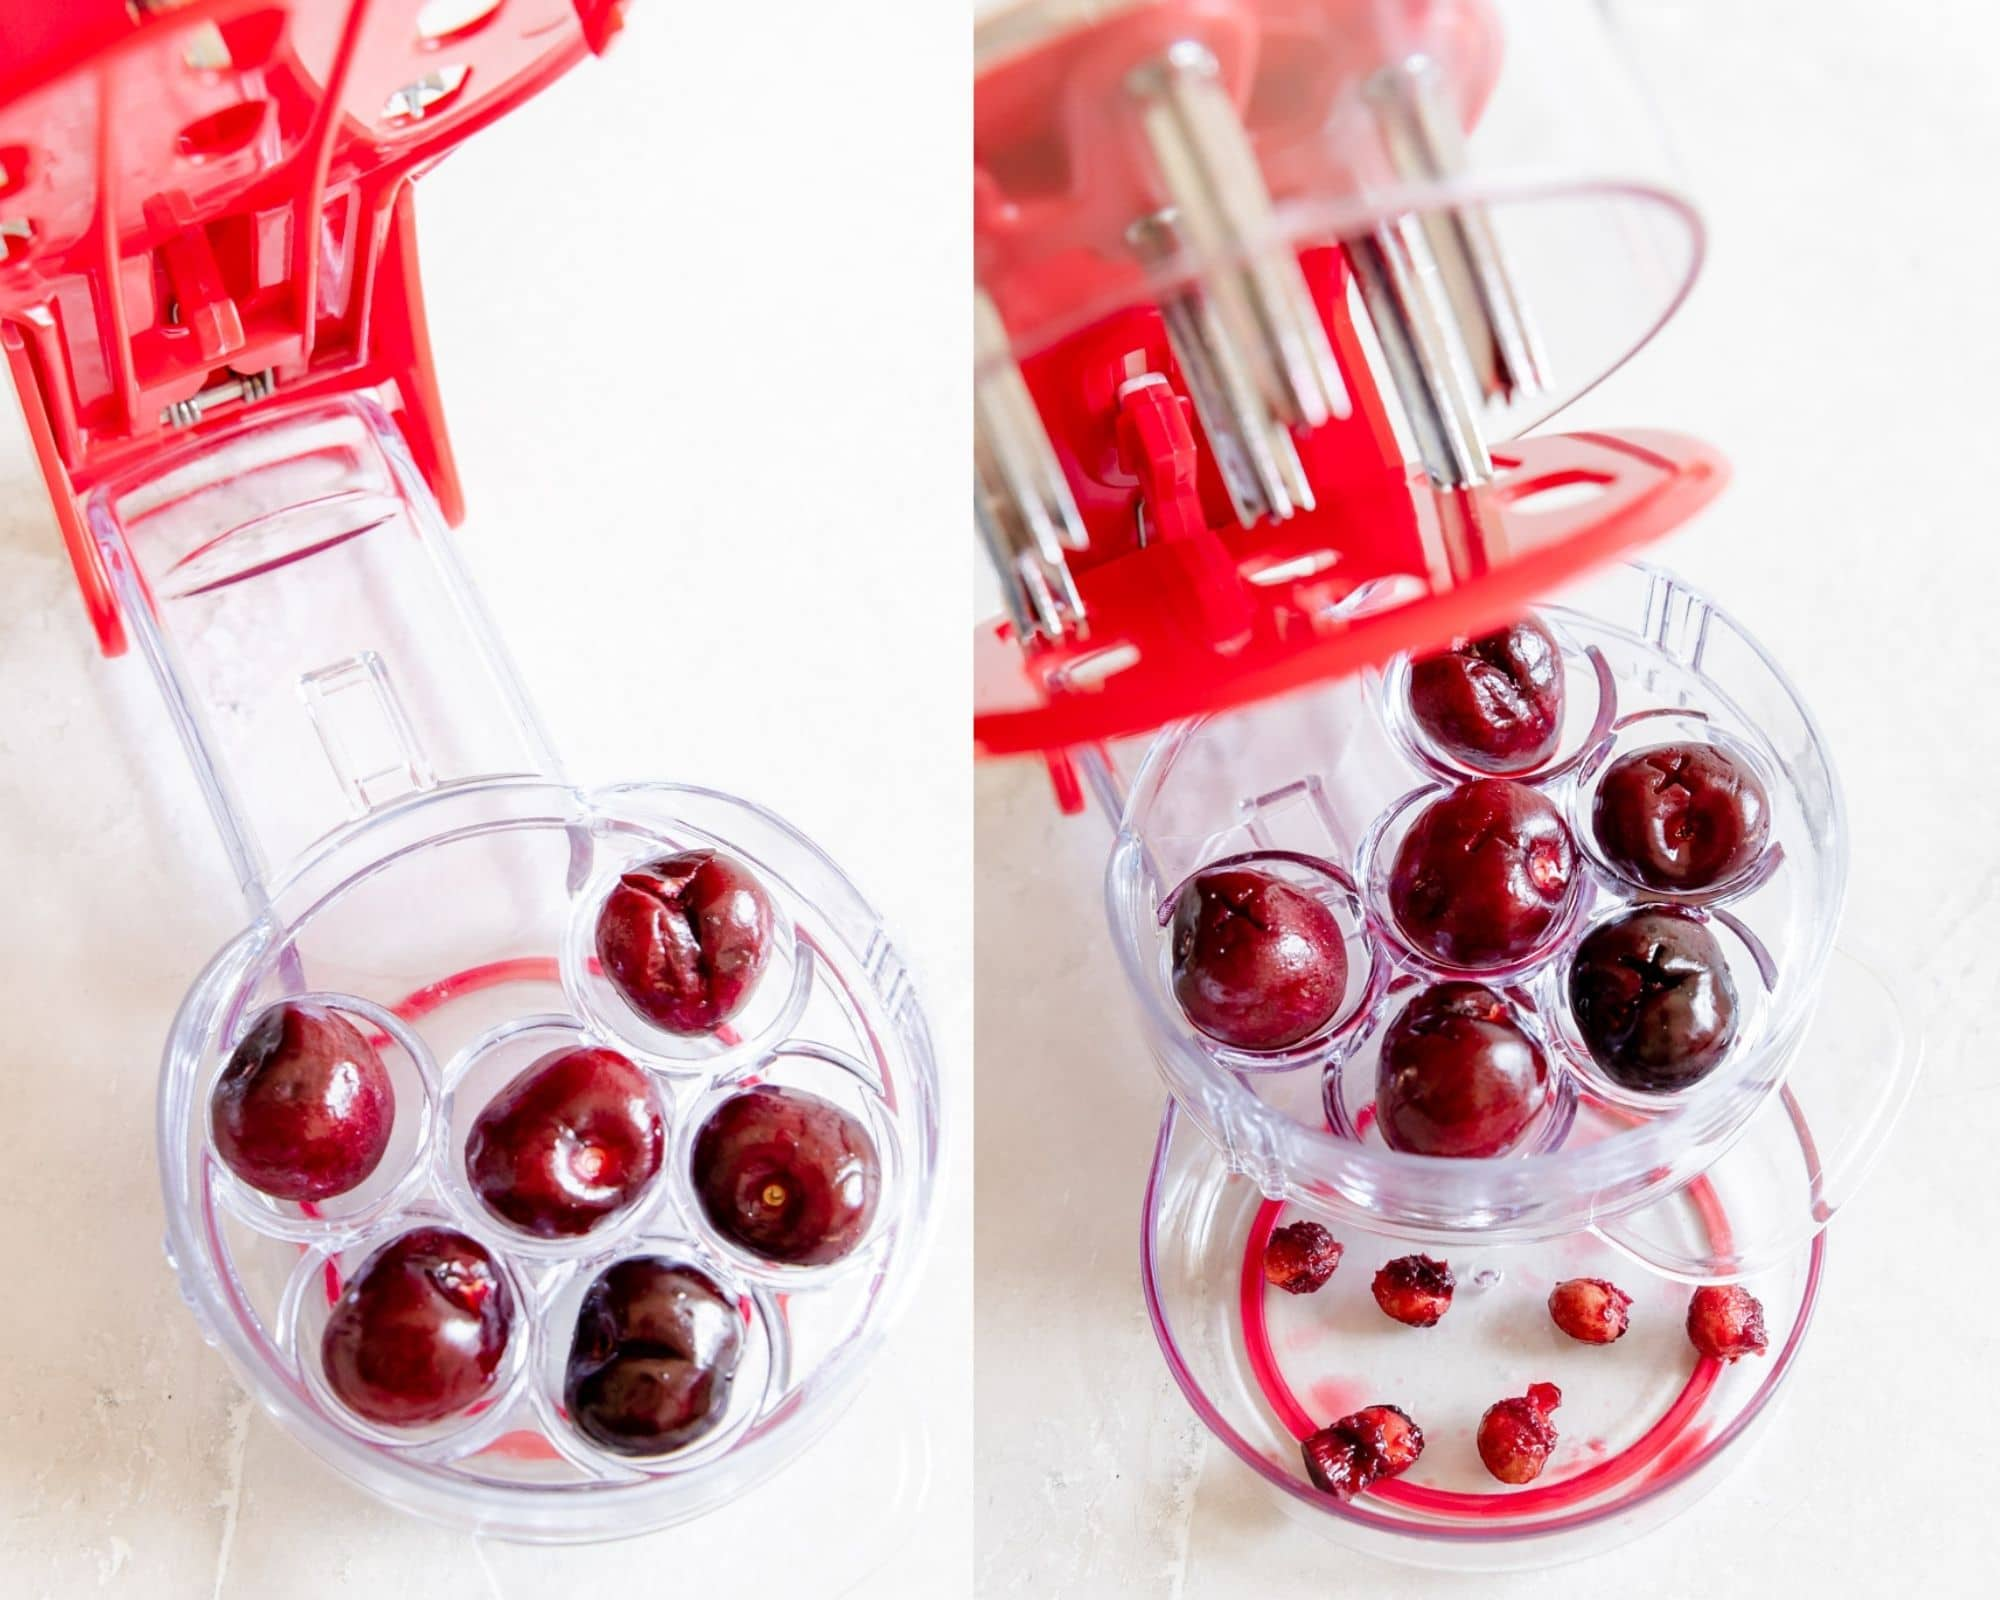 cherry pitter pitting 6 cherries at once